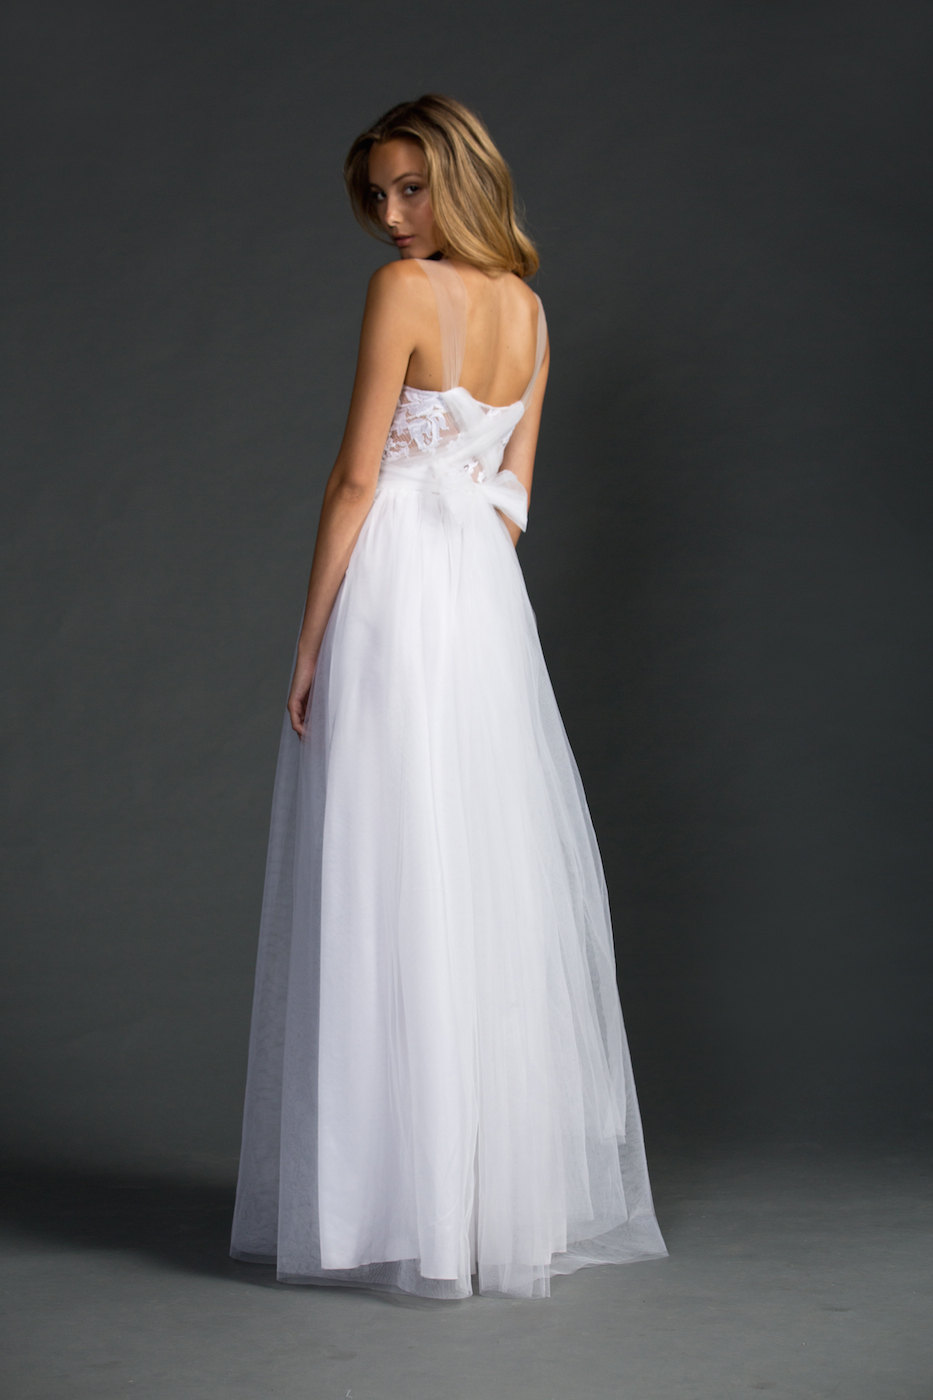 back view - dreamy sheer neckline wedding dress | via http://emmalinebride.com/bride/sheer-neckline-wedding-dress/